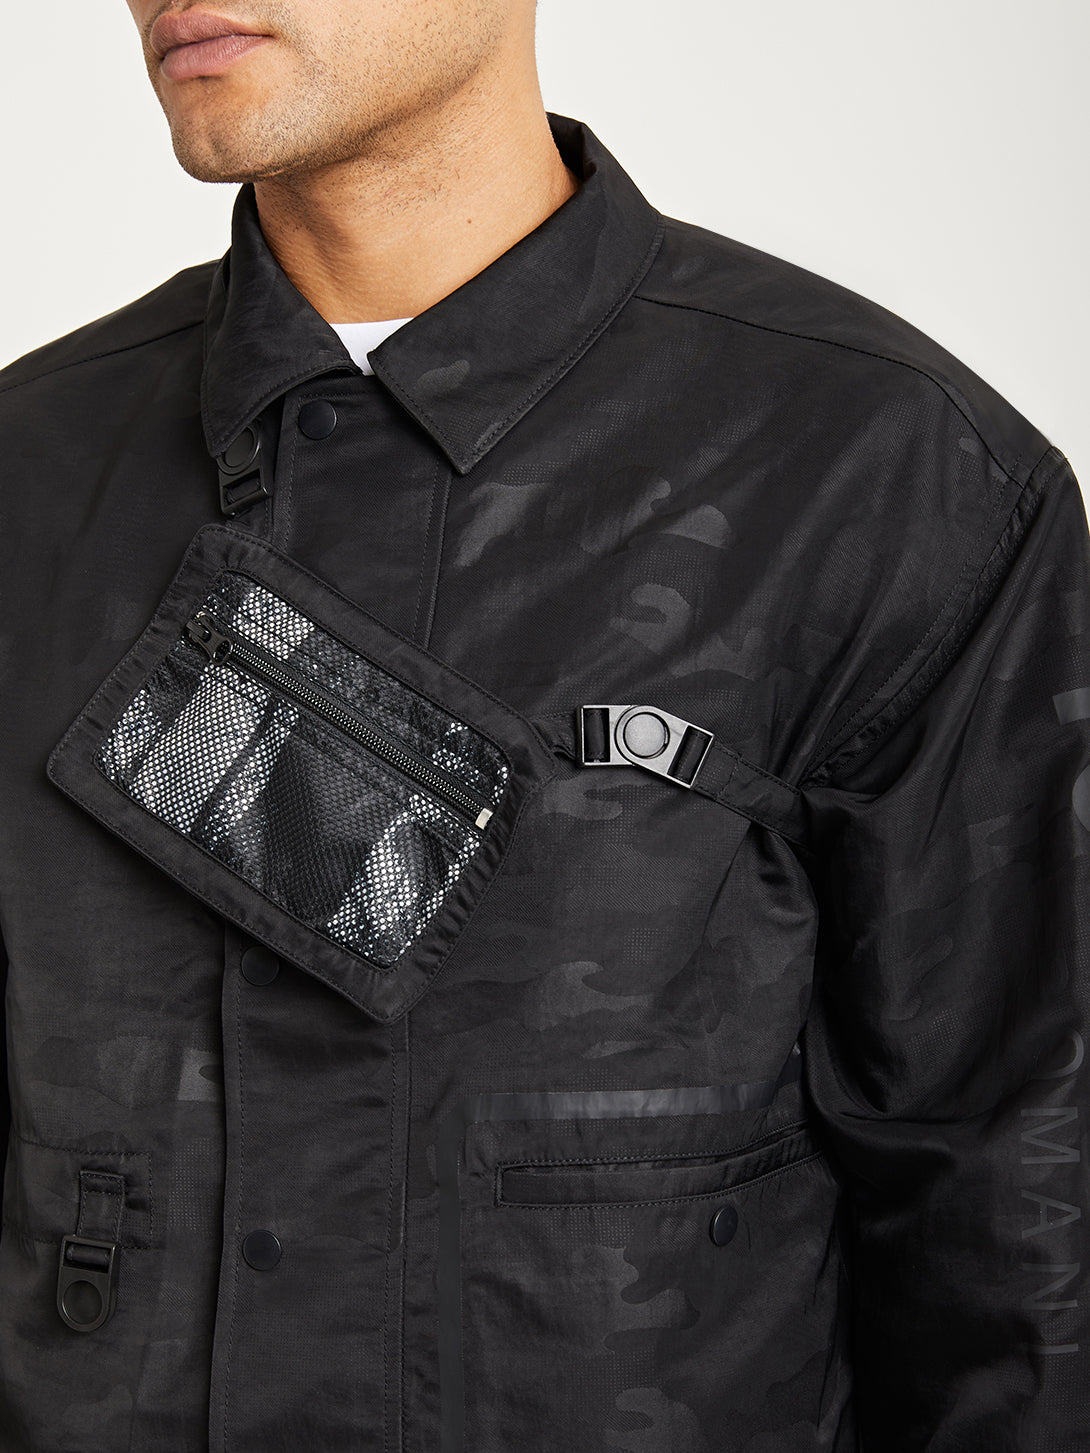 BLACK ONS x DTT creative live collaboration nylon tech jacket